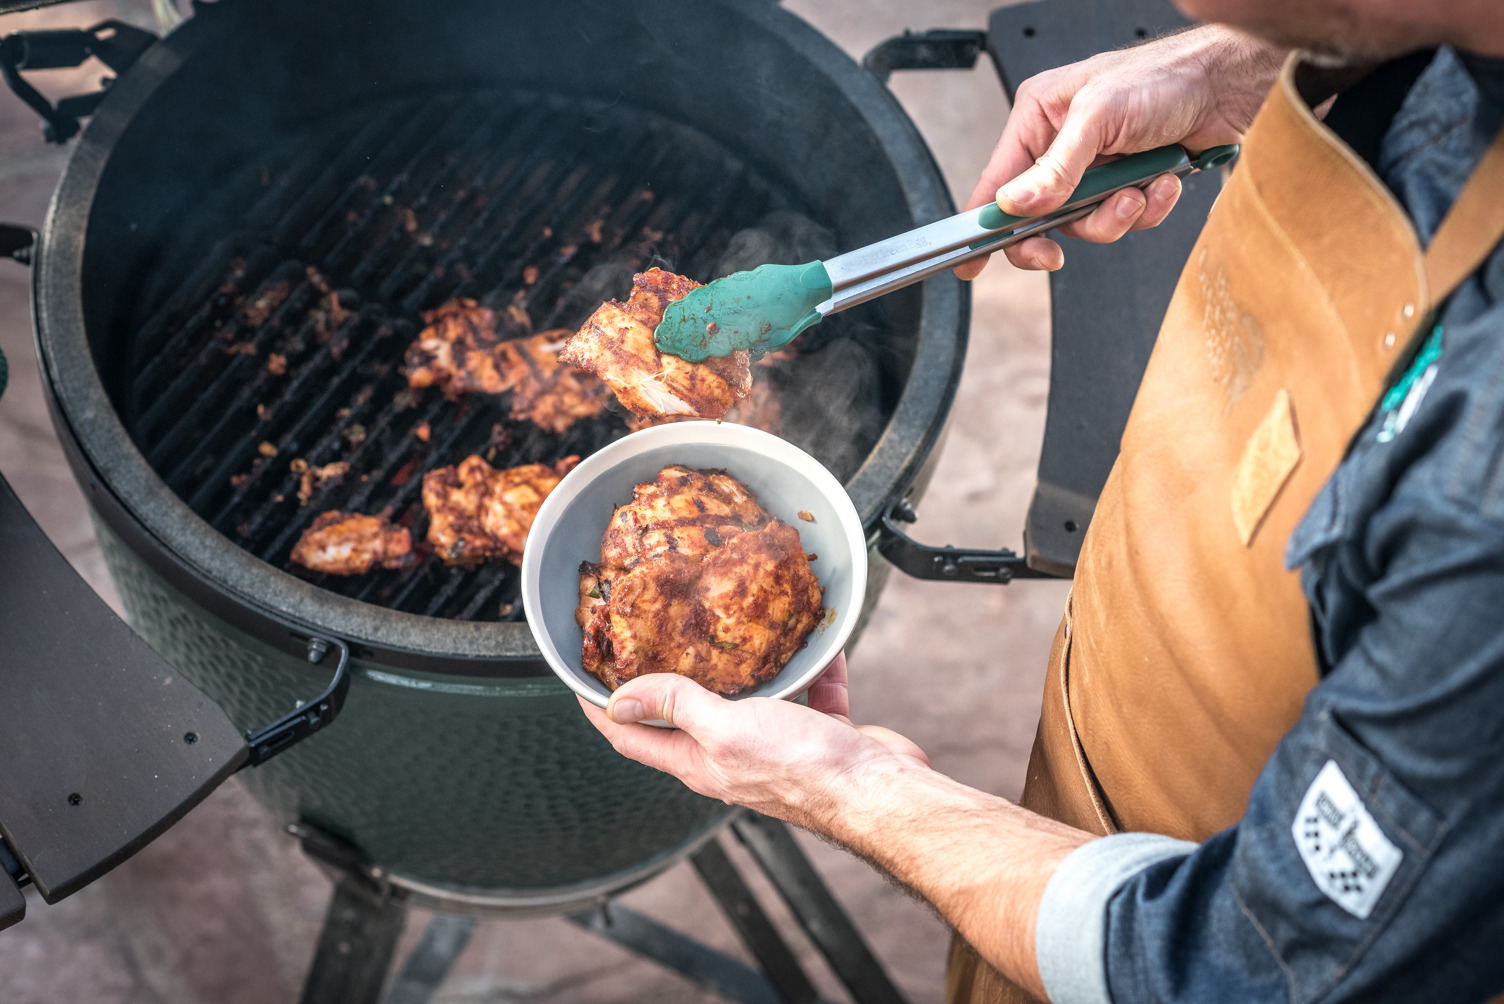 Healthy eating is easy with a Big Green Egg or Traeger Grill